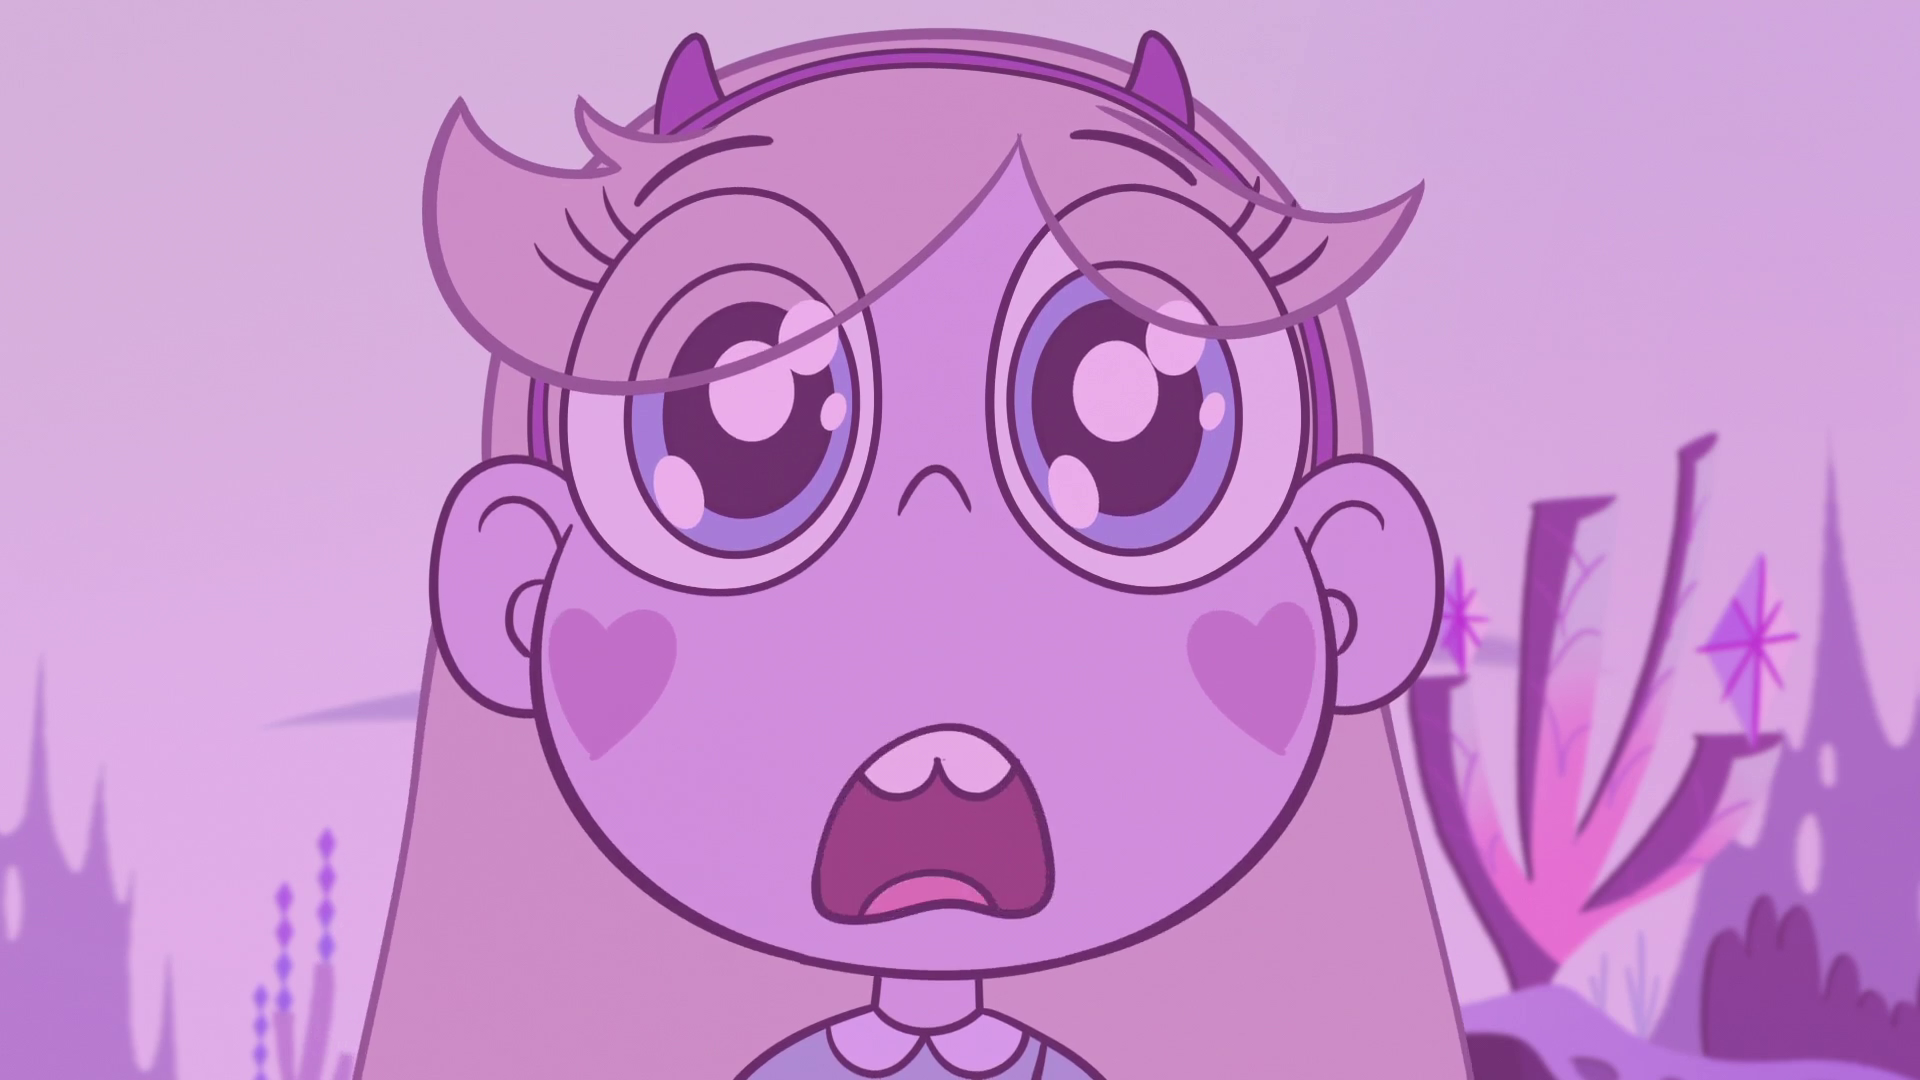 s2e7 star butterfly in awe of giant castlepng - Violet Castle 2016